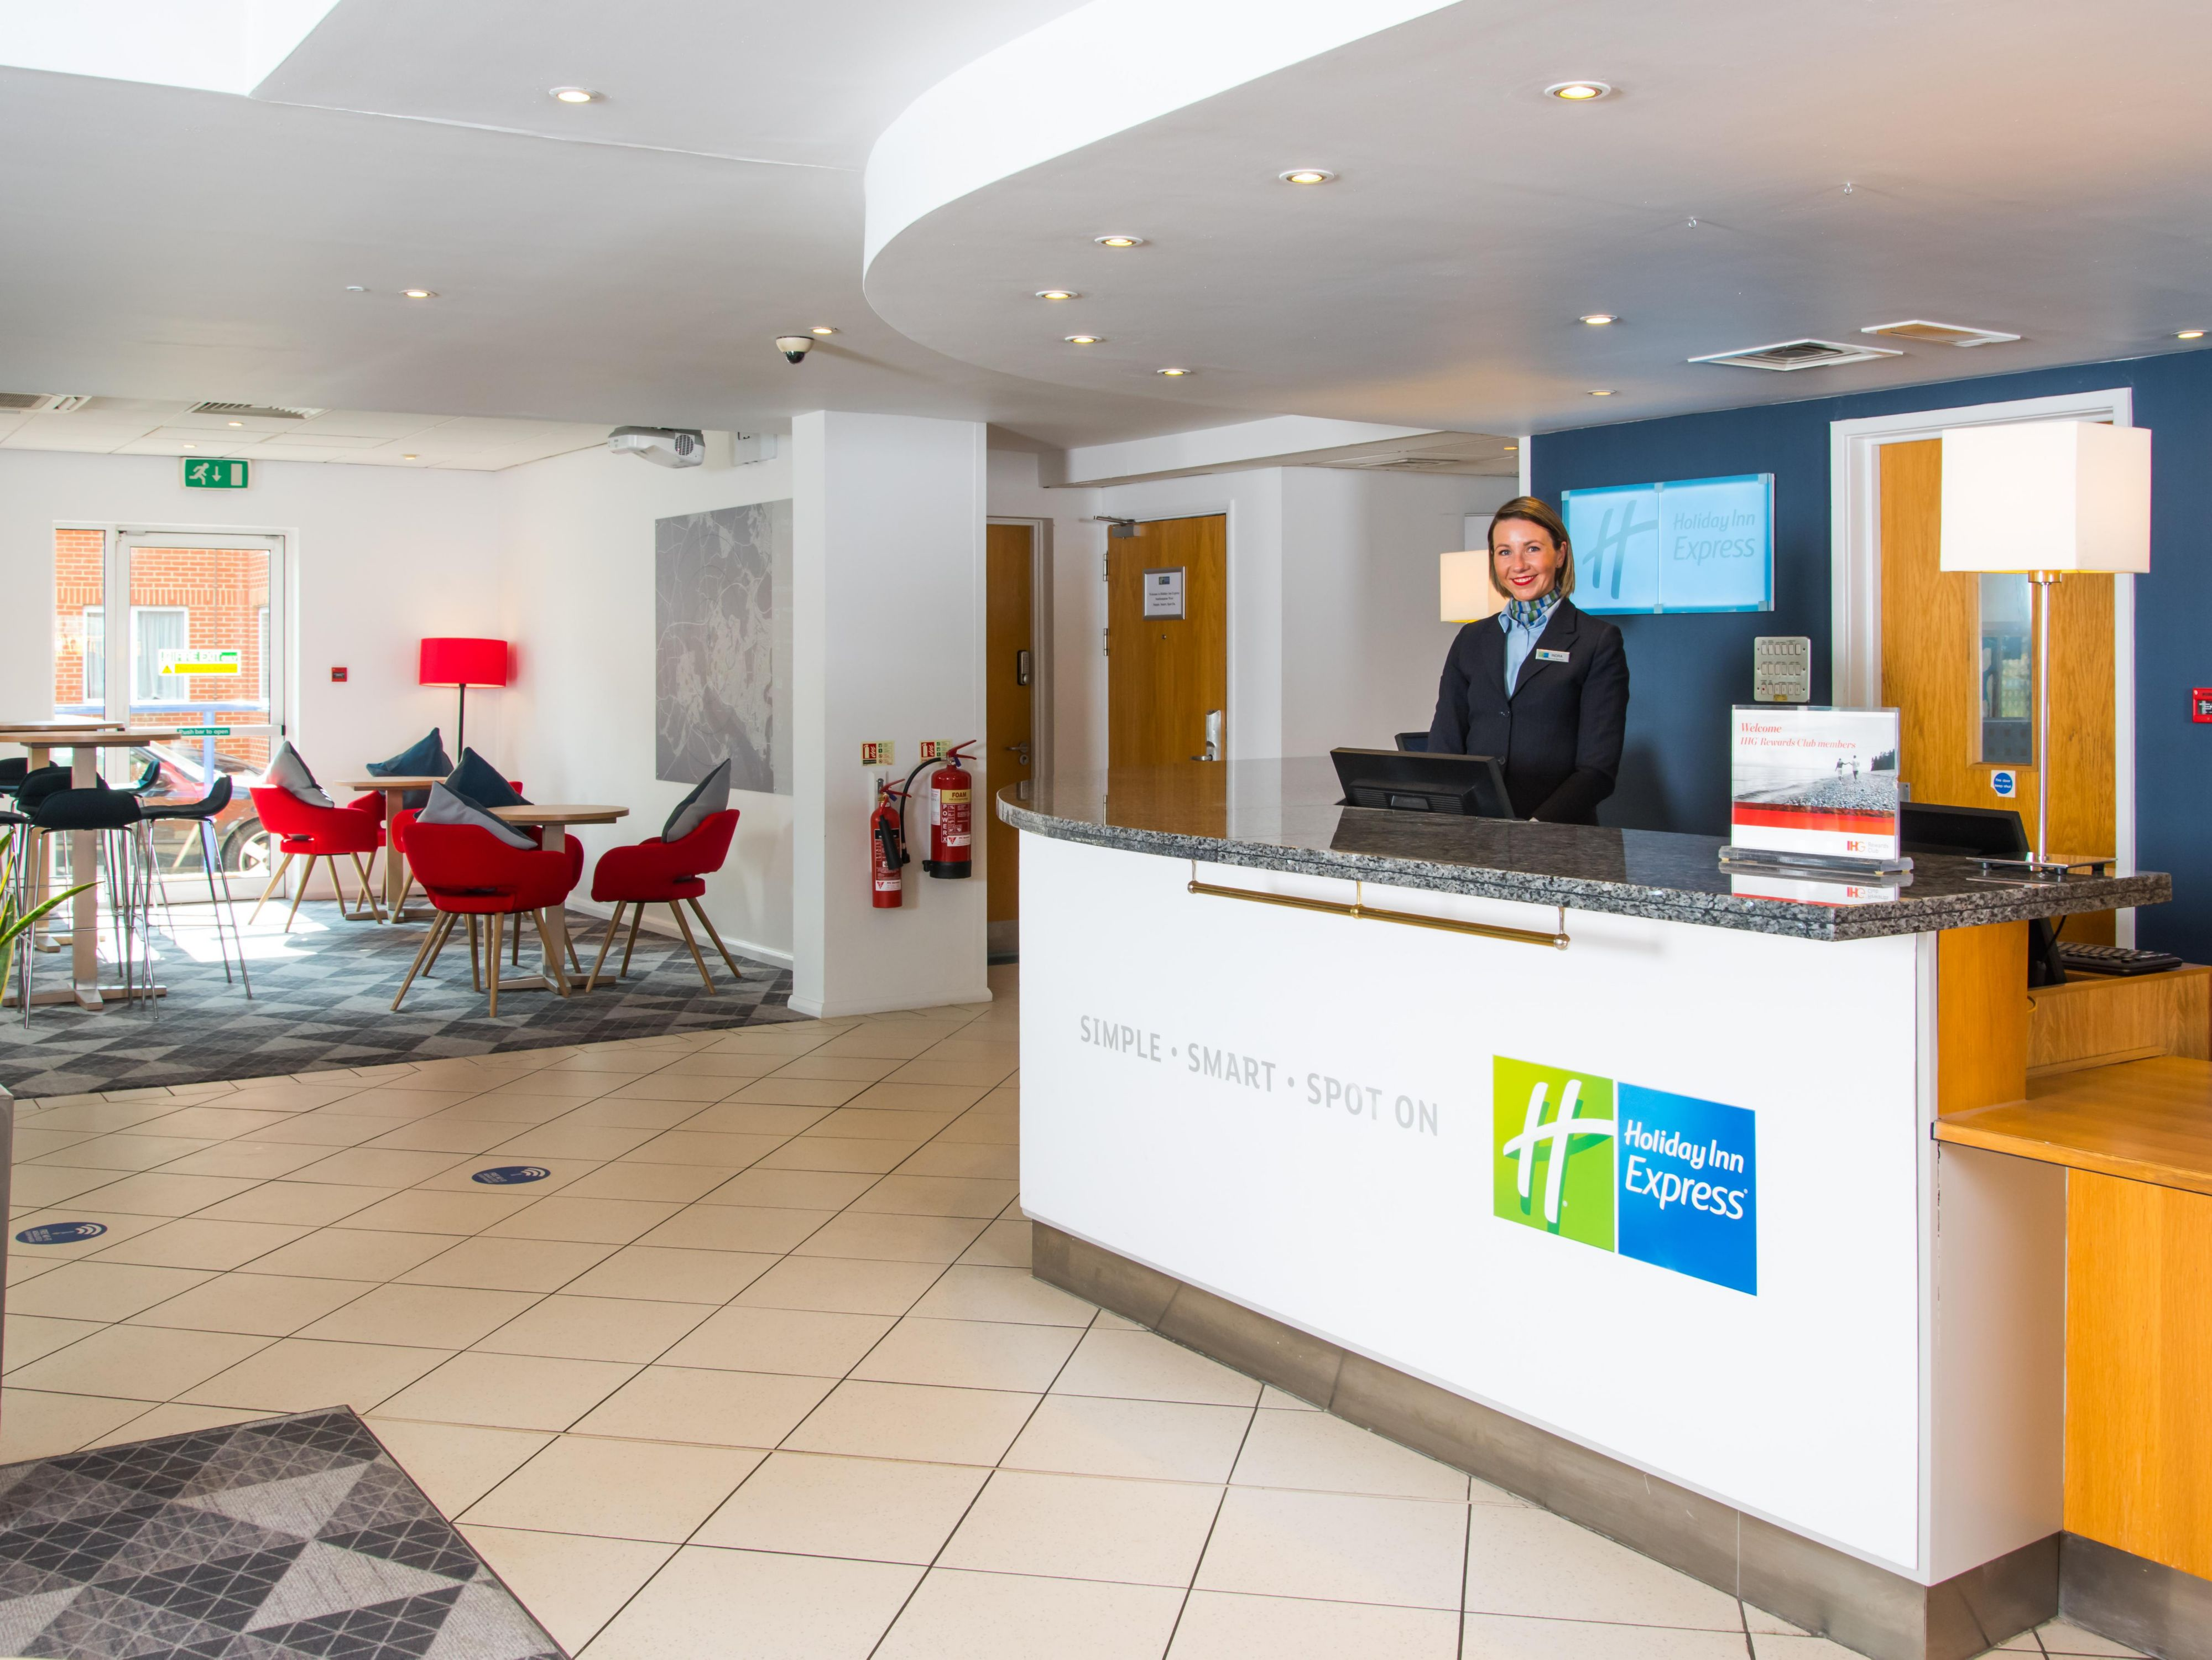 Speak to one of our Reception team about the IHG Rewards Club now!